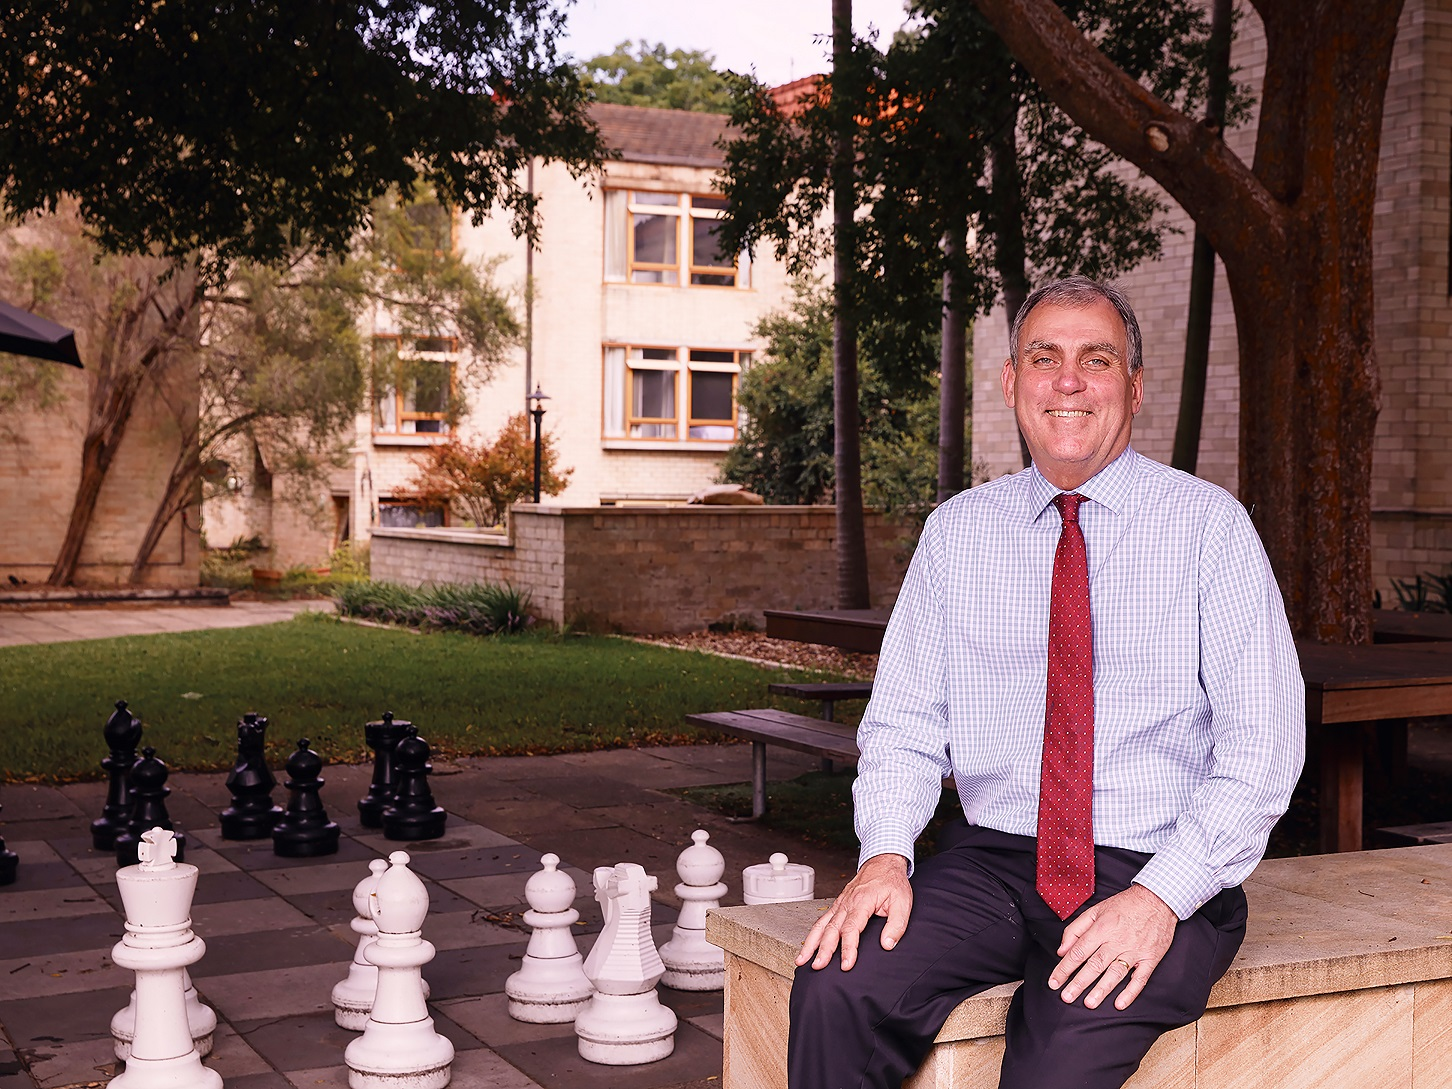 A man (Robert Menzies College Master) sitting in a courtyard near a tree and outdoor chess pieces wearing a red tie